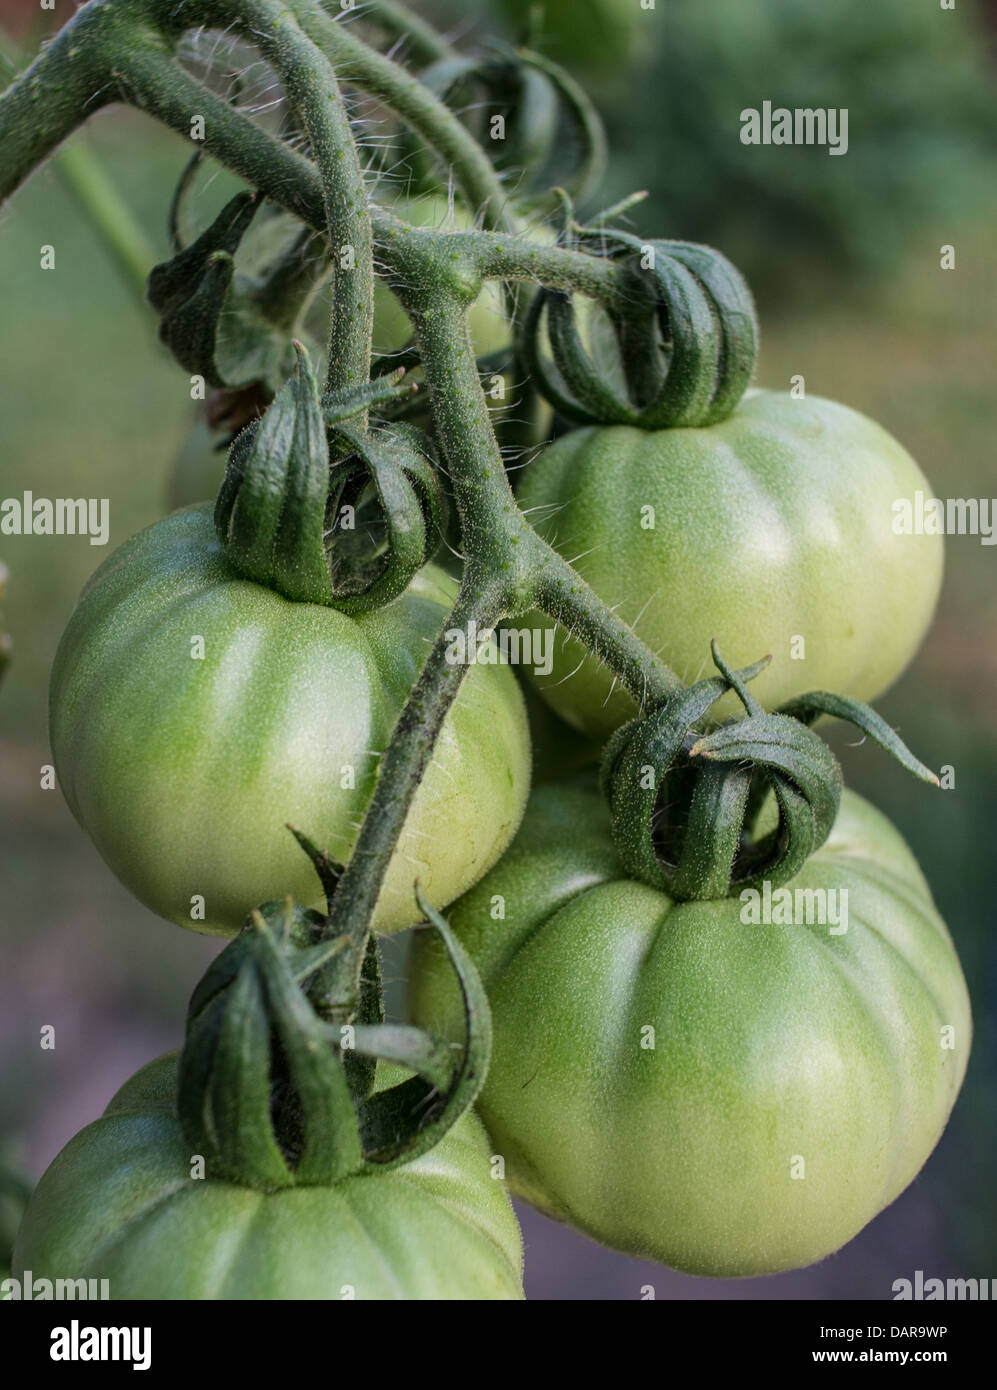 Green Tomatoes - Nice and Plump! - Stock Image